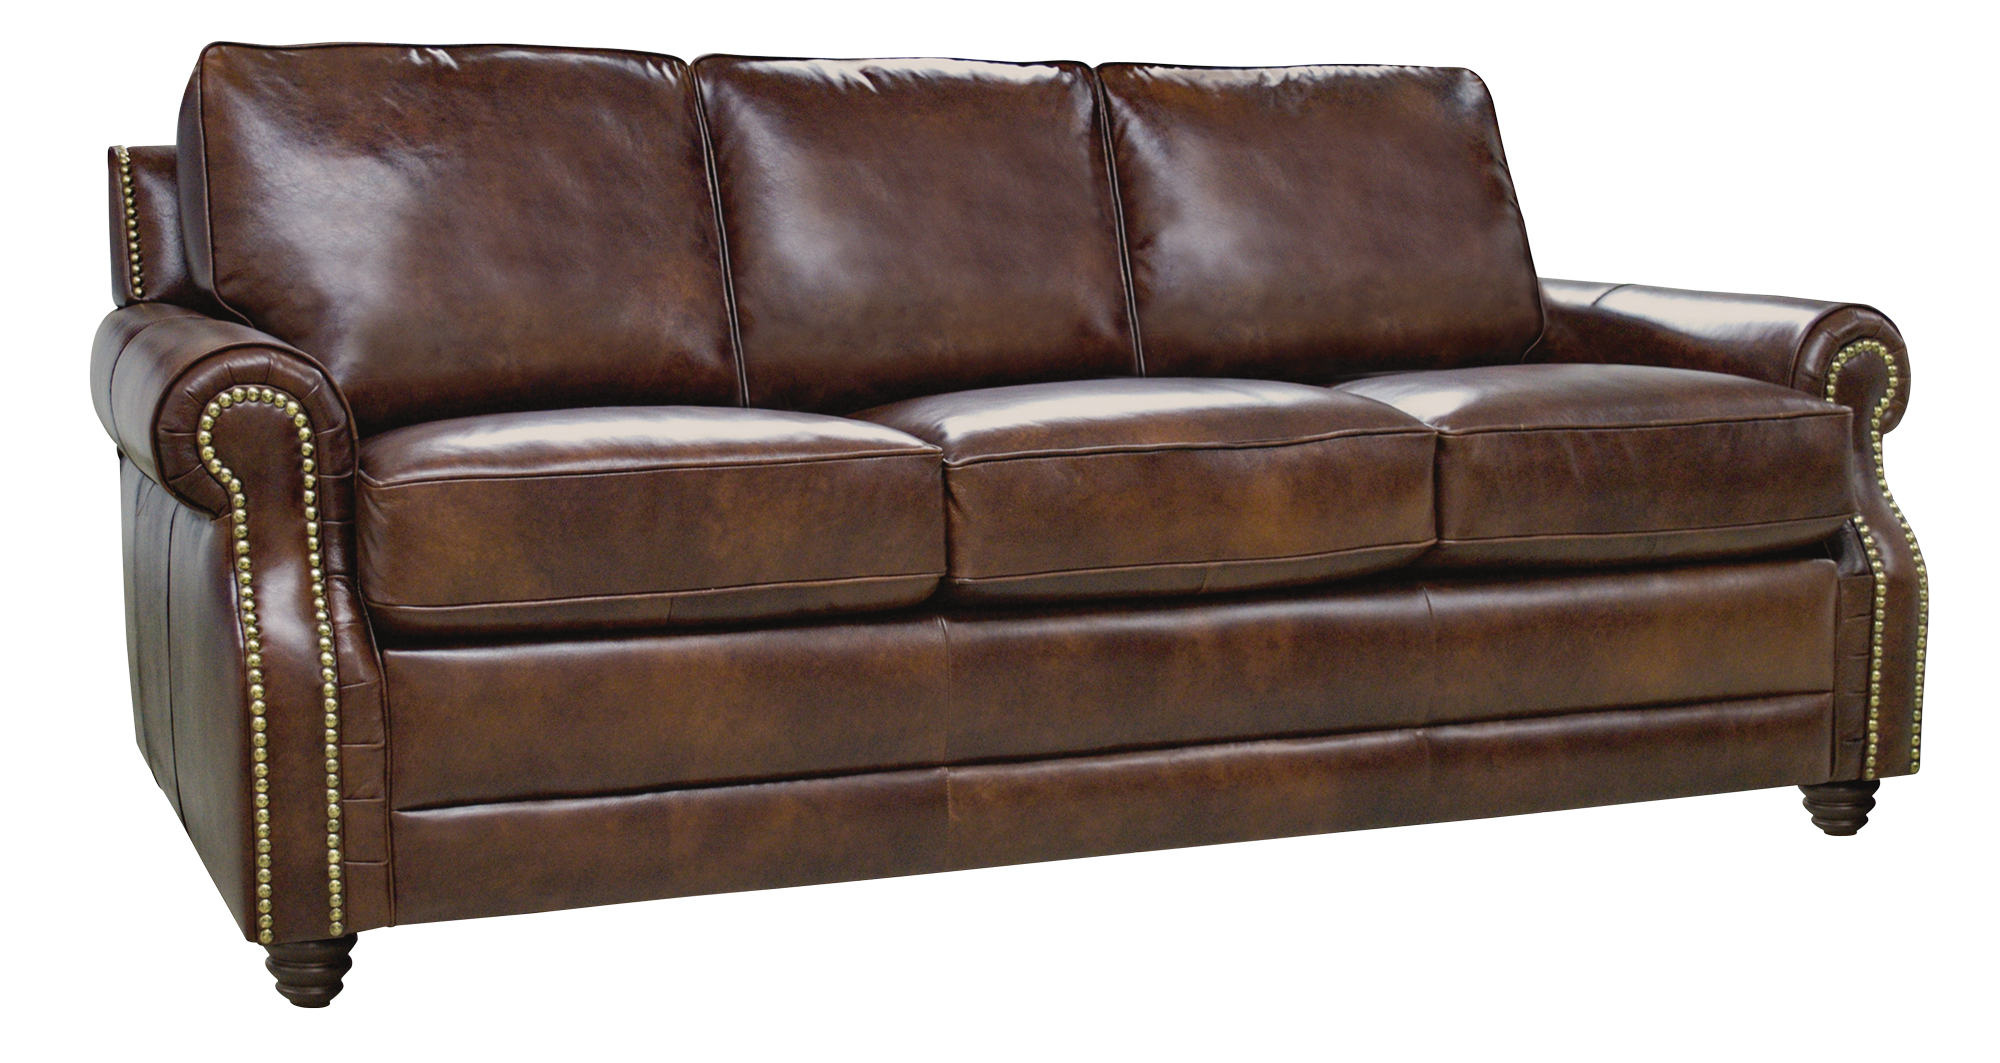 New Luke Leather Dark Caramel Brown Italian Leather Levi Sofa Chair 3500 Ebay